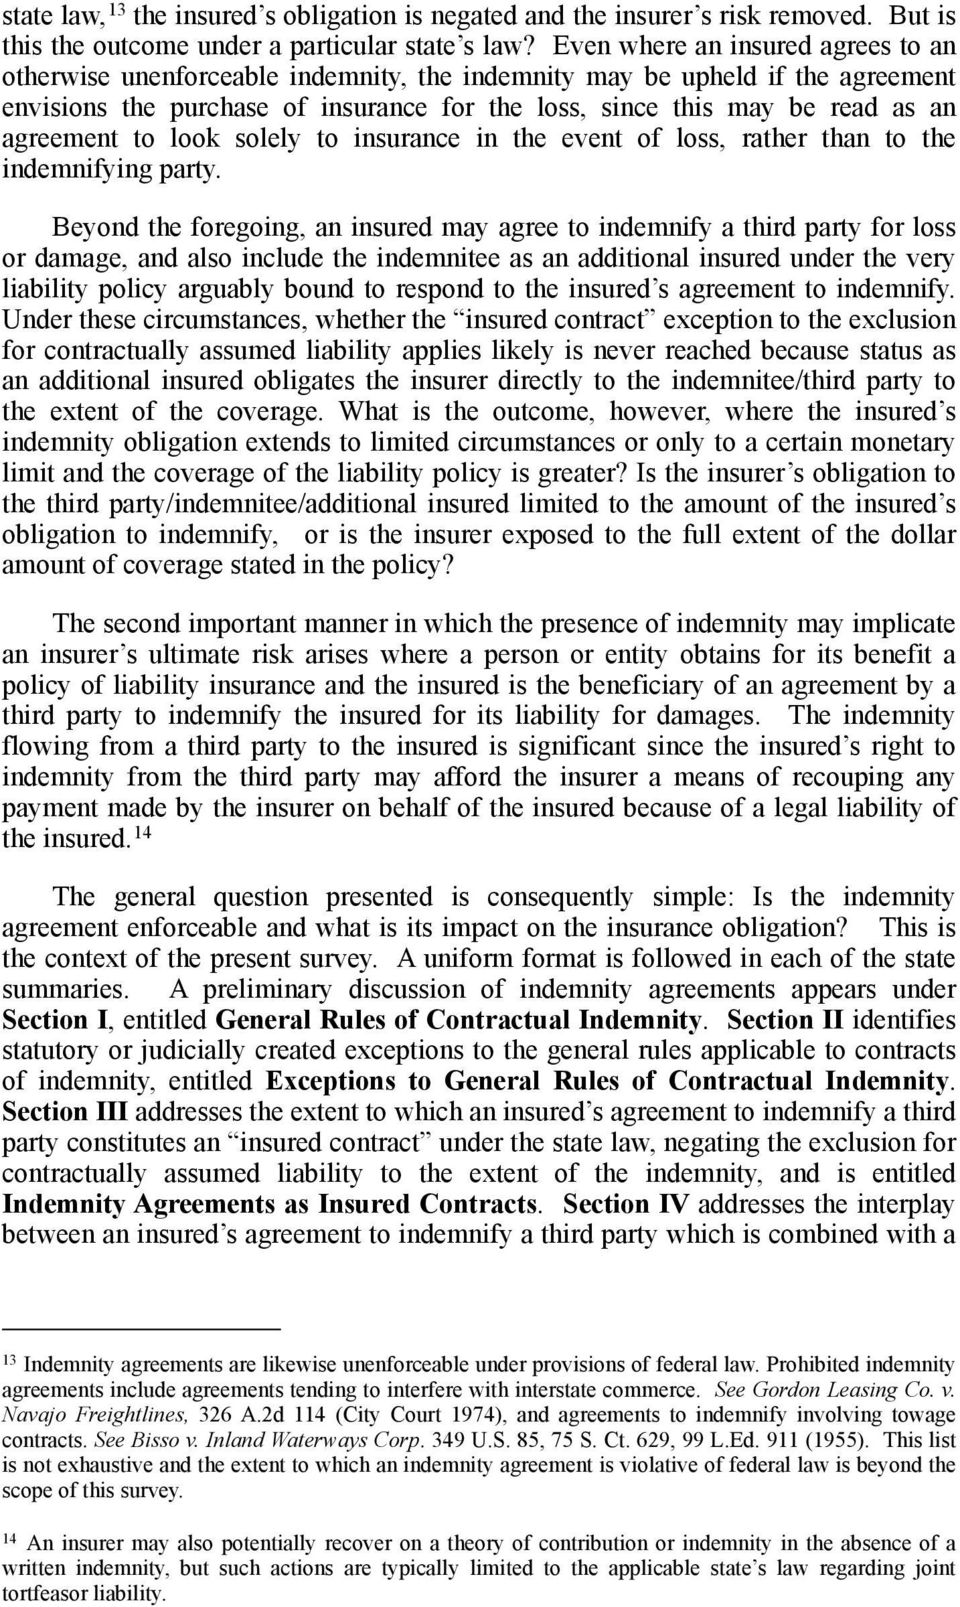 agreement to look solely to insurance in the event of loss, rather than to the indemnifying party.